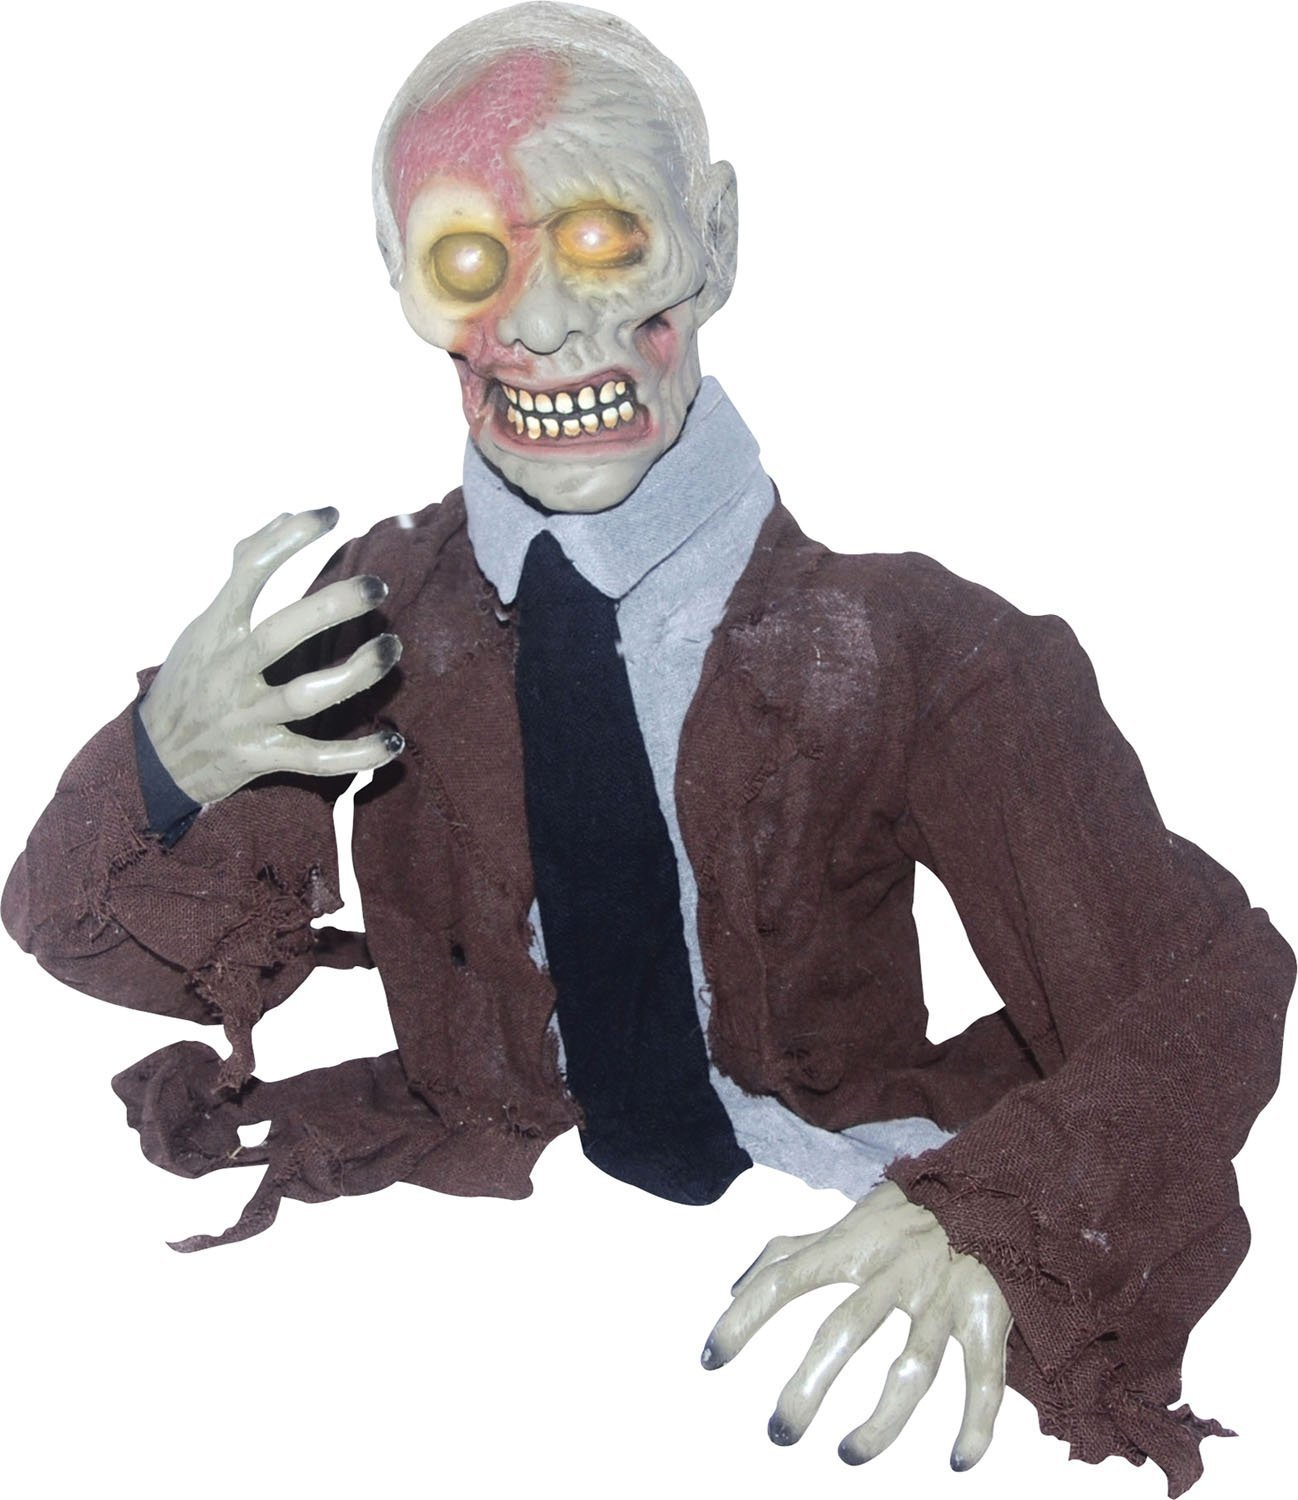 VIDEO LIFESIZE Limbless Jim Animated ZOMBIE HAUNTED HOUSE OUTDOOR HALLOWEEN PROP